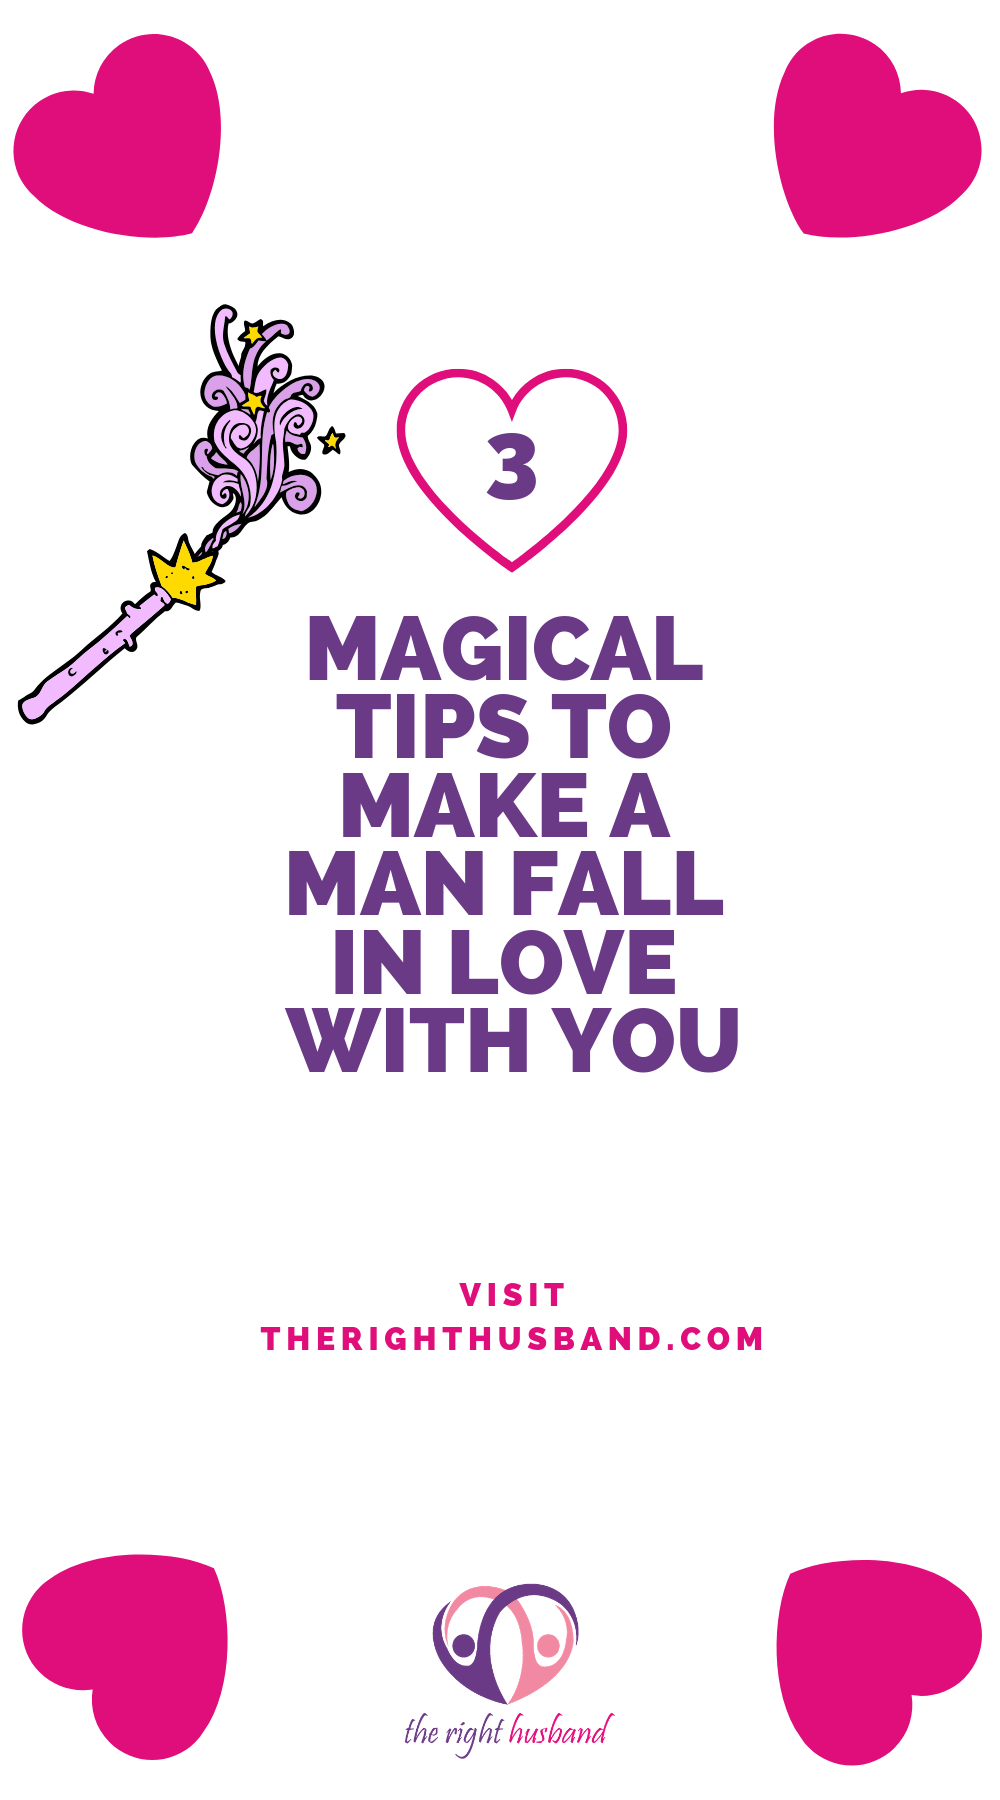 1000_1800 3 magical tips to make a man fall in love with you 1